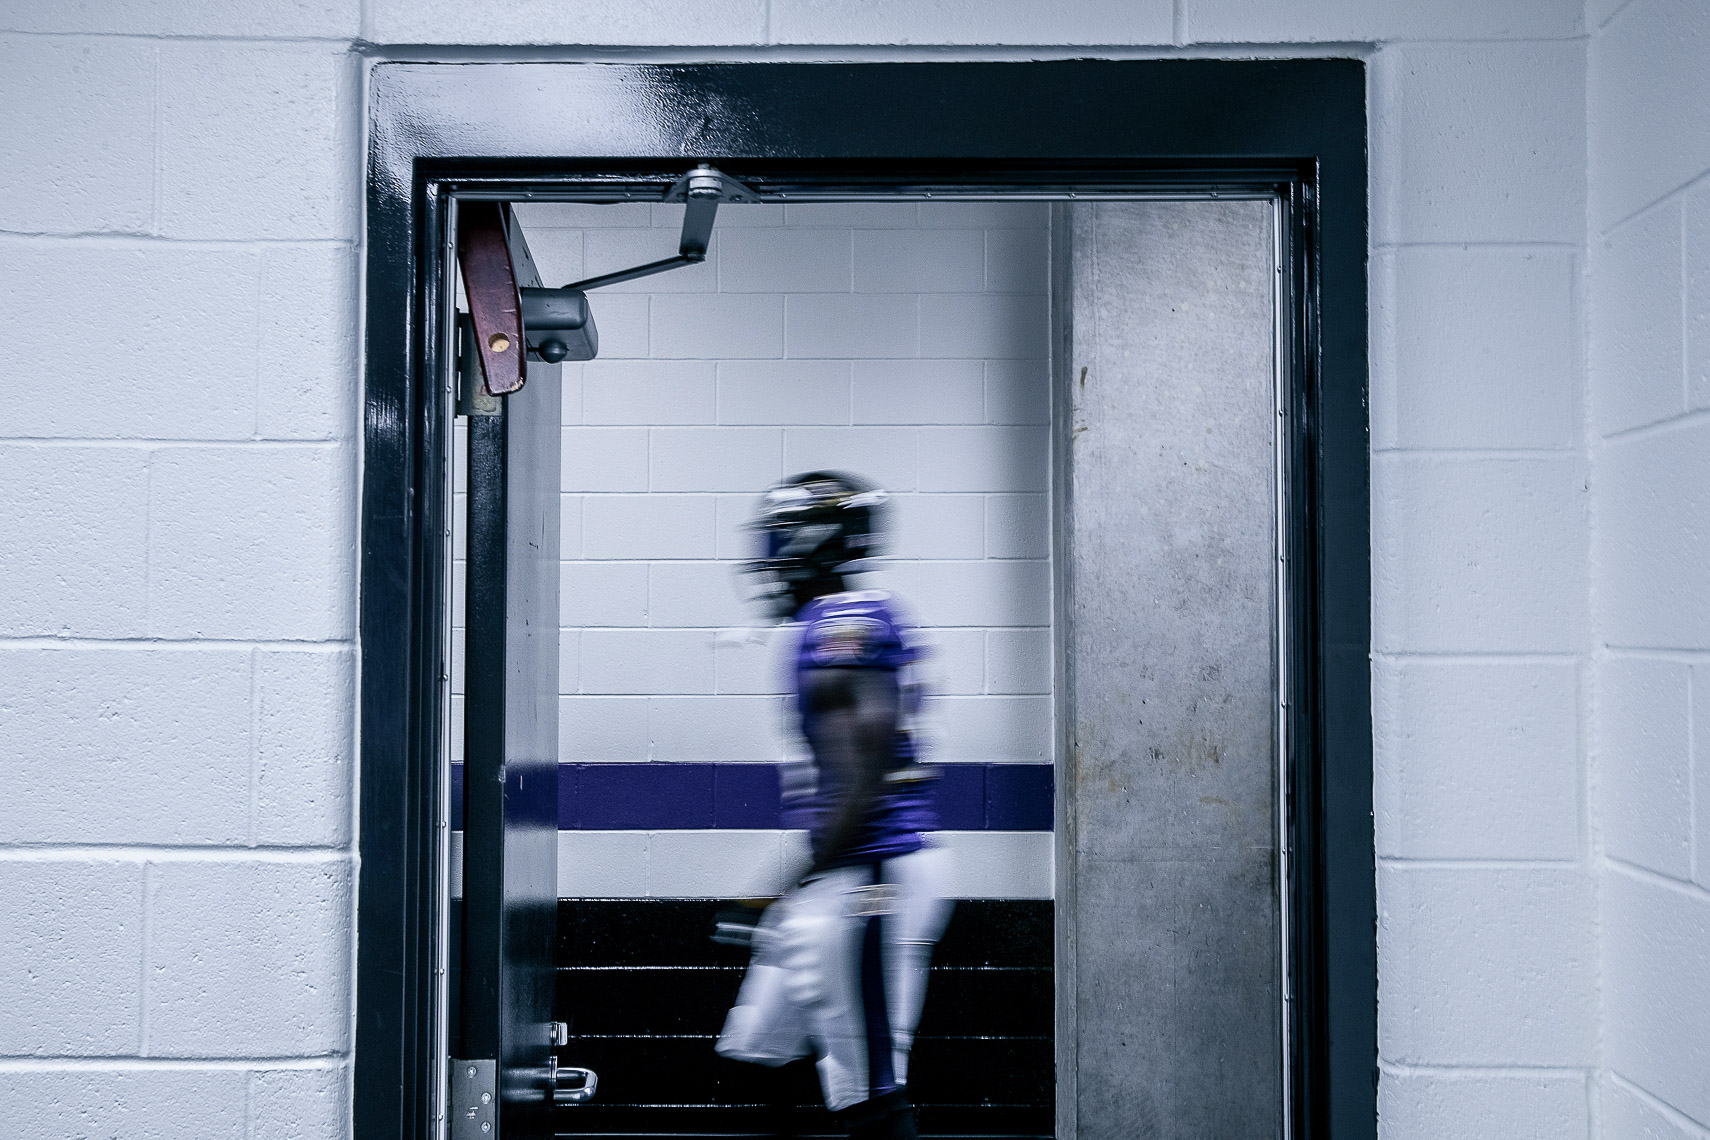 ravens03  NFL Baltimore Ravens photos of inside an NFL locker room behind the scenes NFL team photographer documentary sports photographer photo of Terrell Suggs